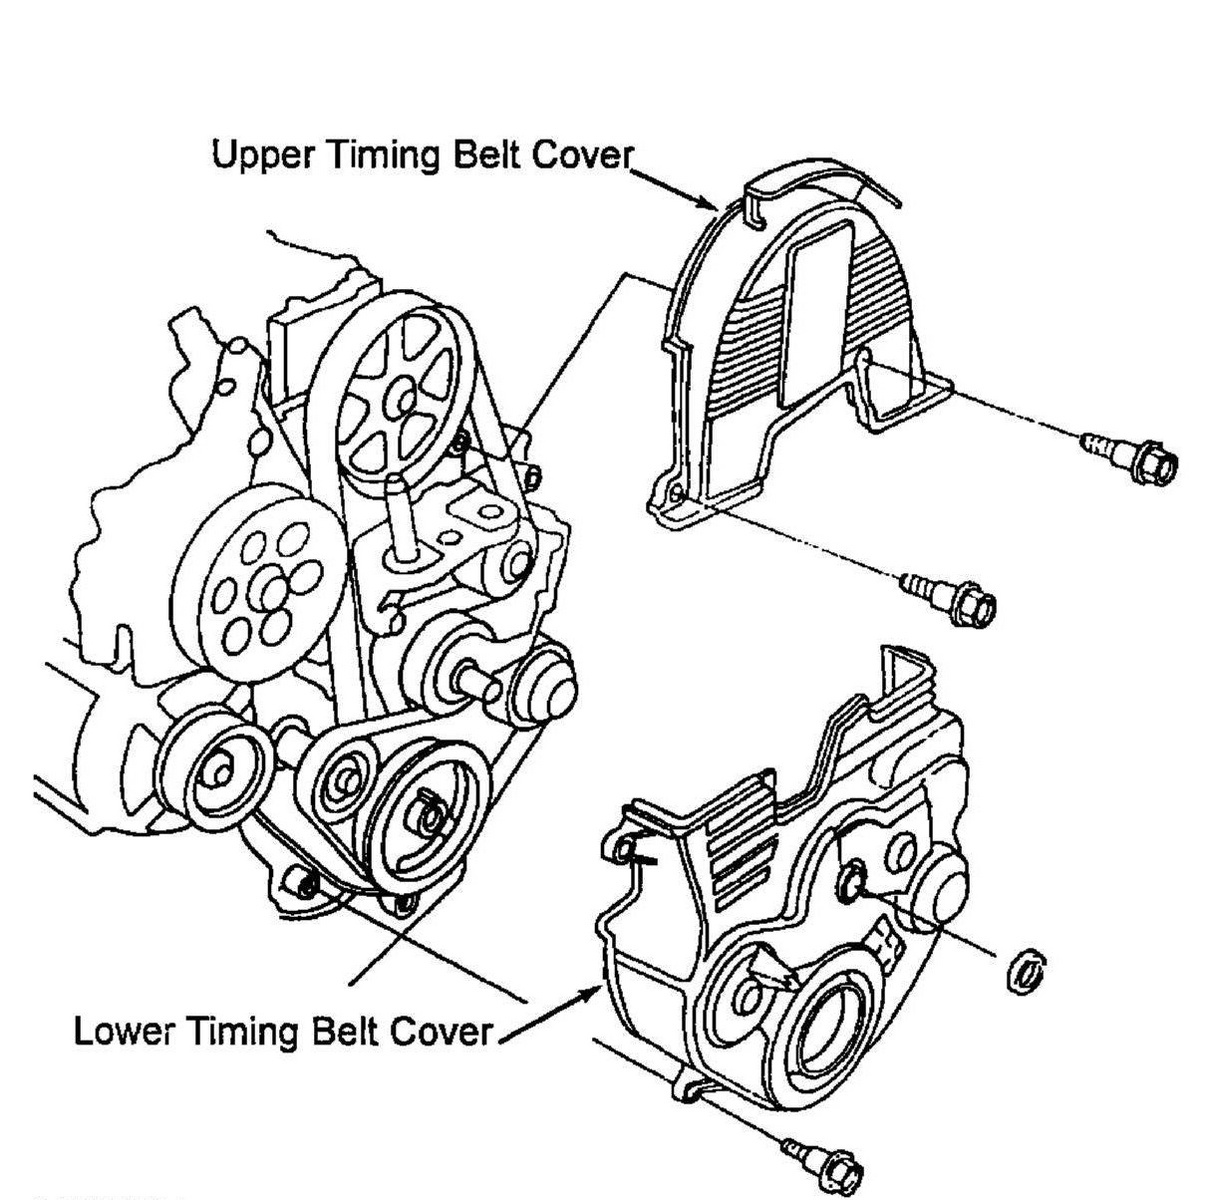 Honda Civic Timing Belt Diagram. honda civic how to